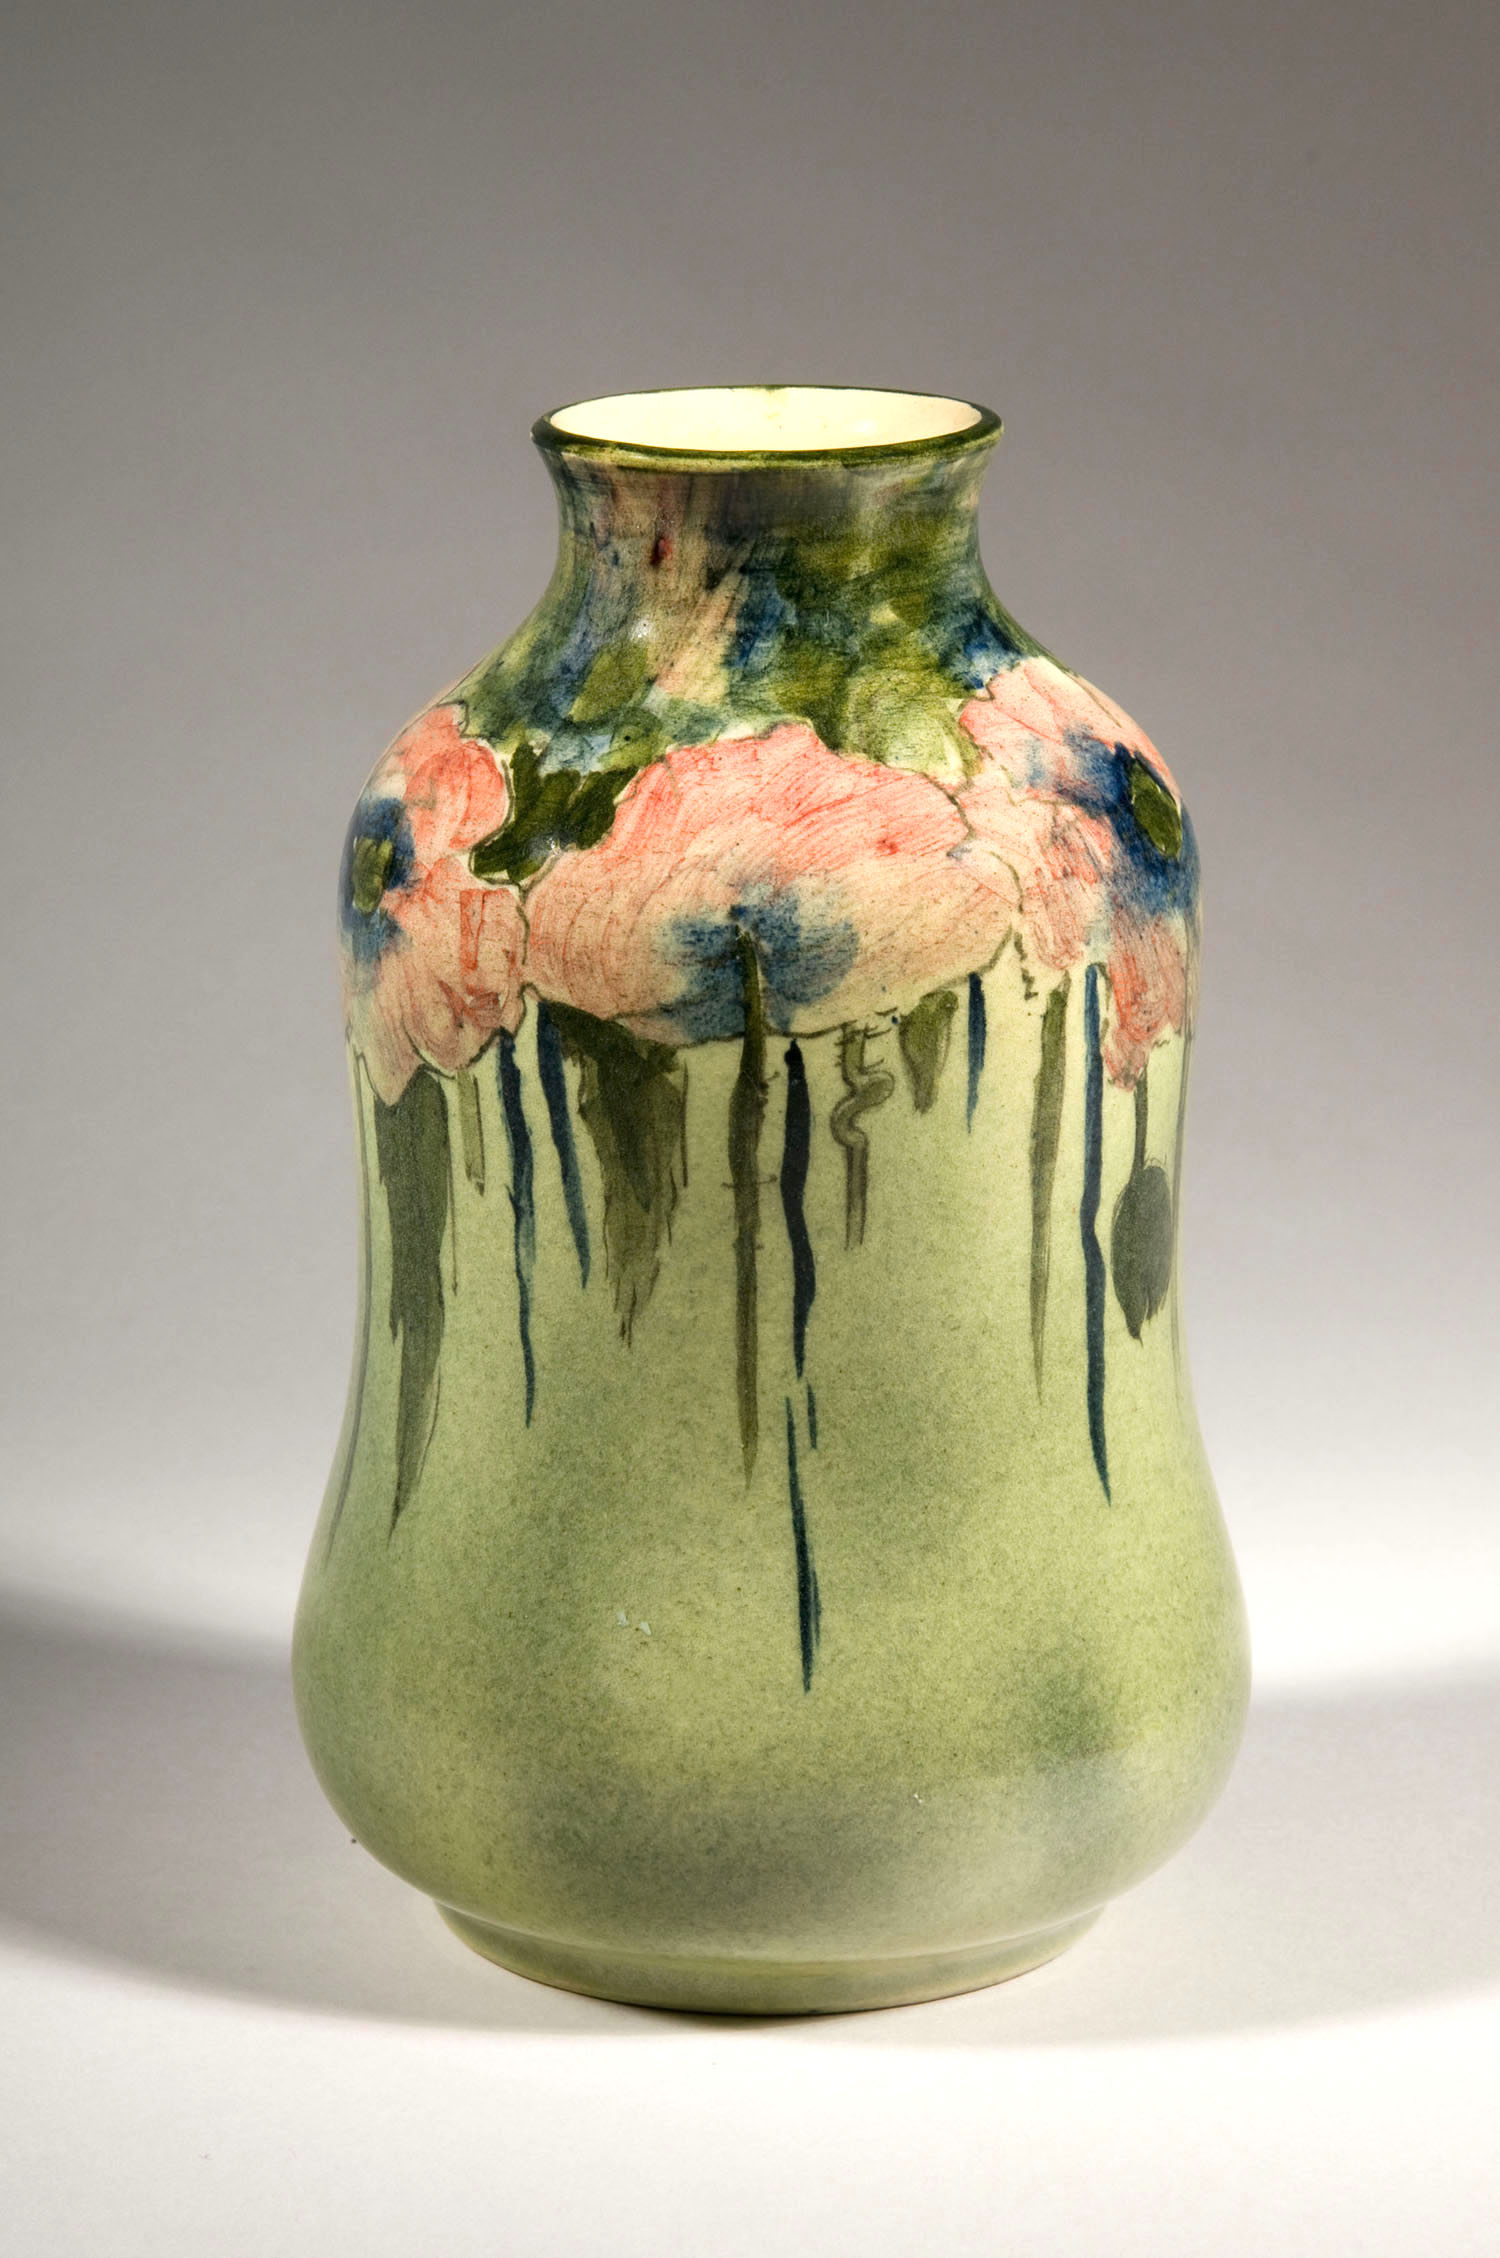 Louis comfort tiffany the morse museum orlando florida for Arts and crafts vases pottery